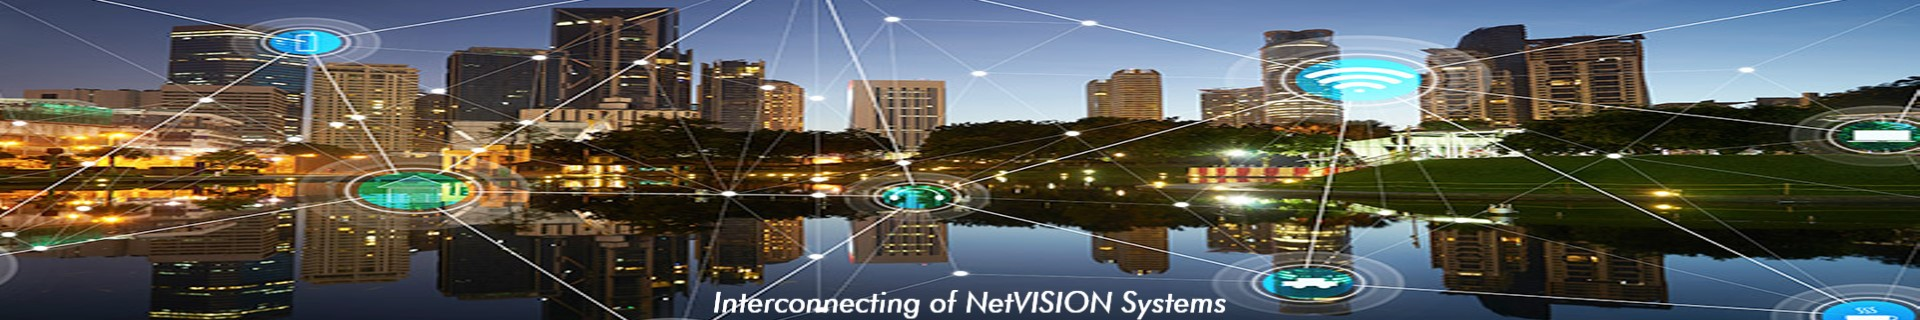 netvision-home-building-control-connectivity.jpg